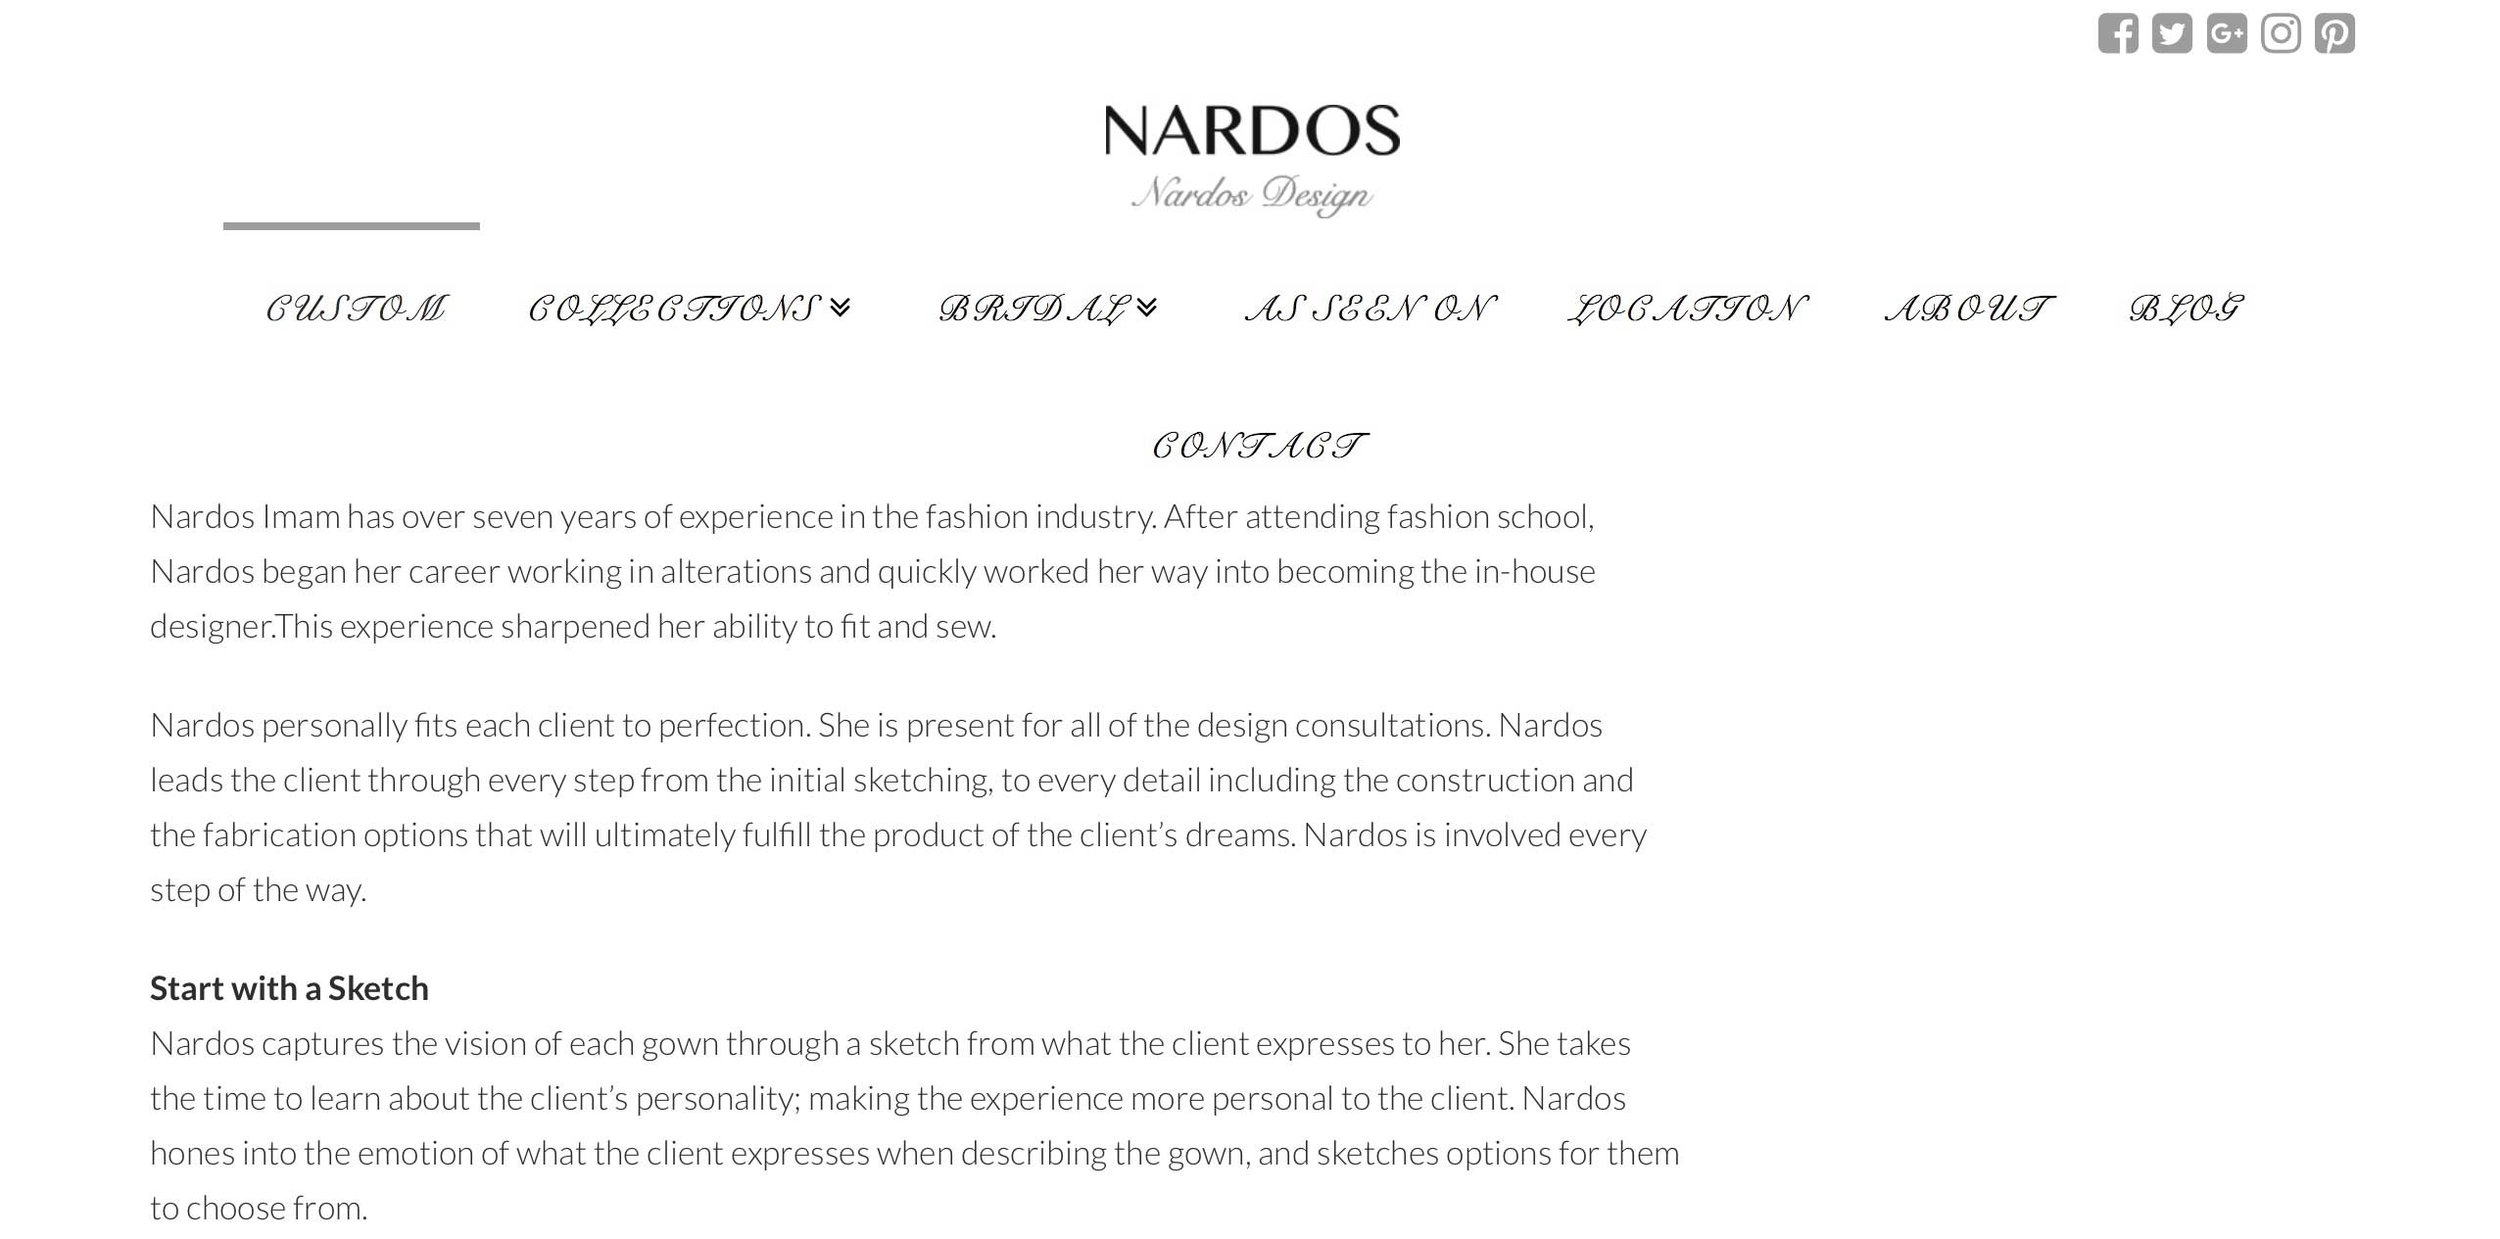 Nardos-Design-Website-3-w.jpg